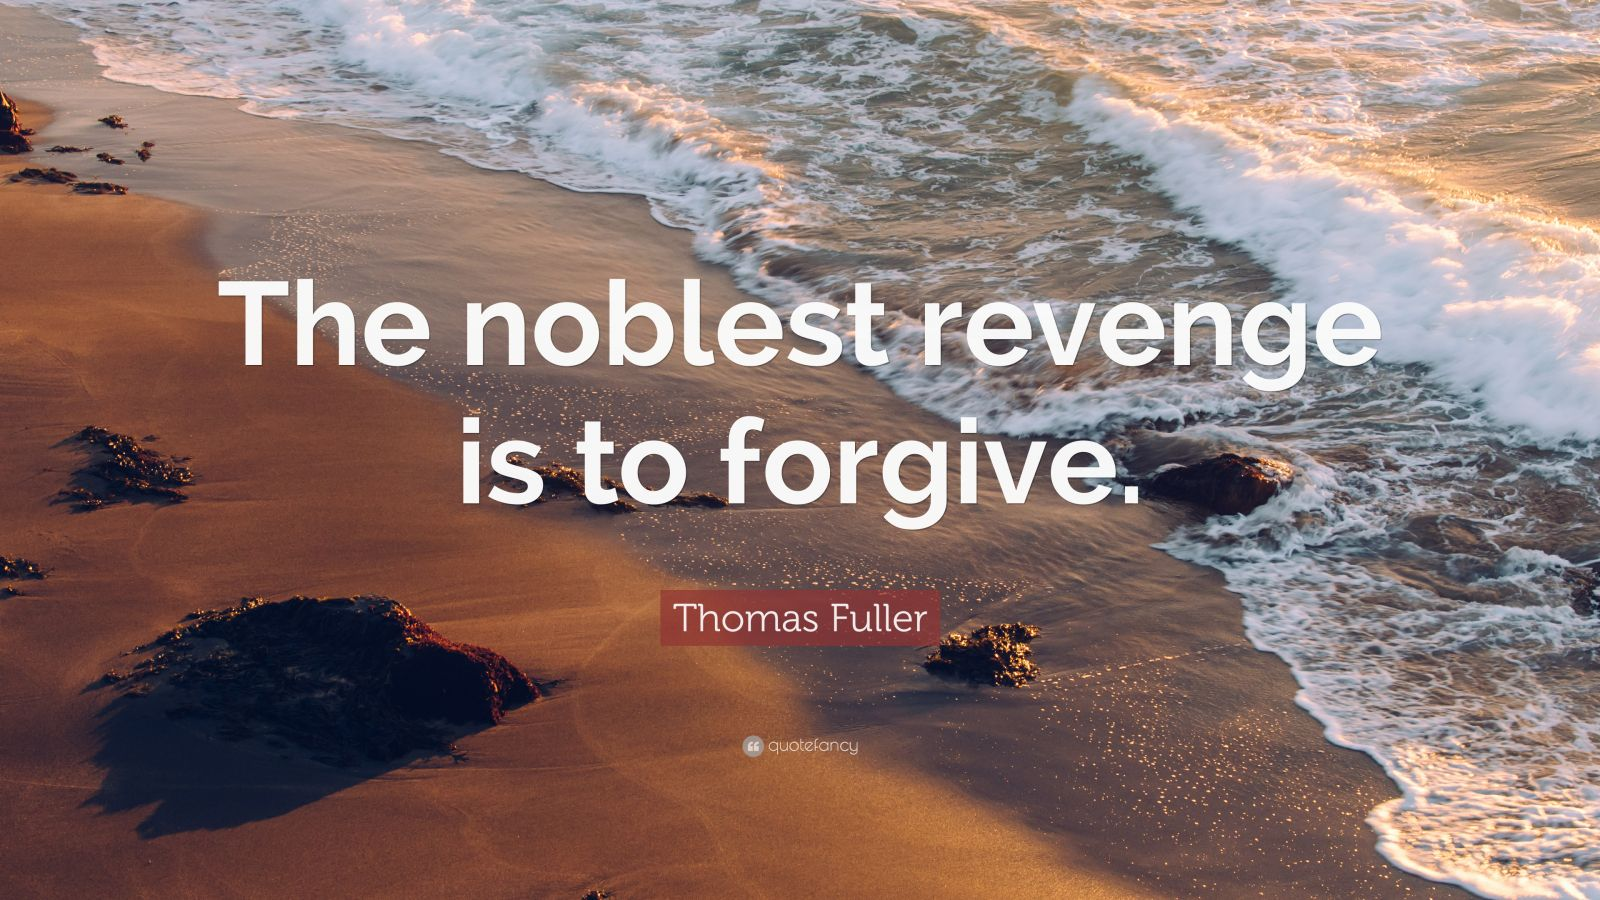 essay on forgiveness is the noblest revenge